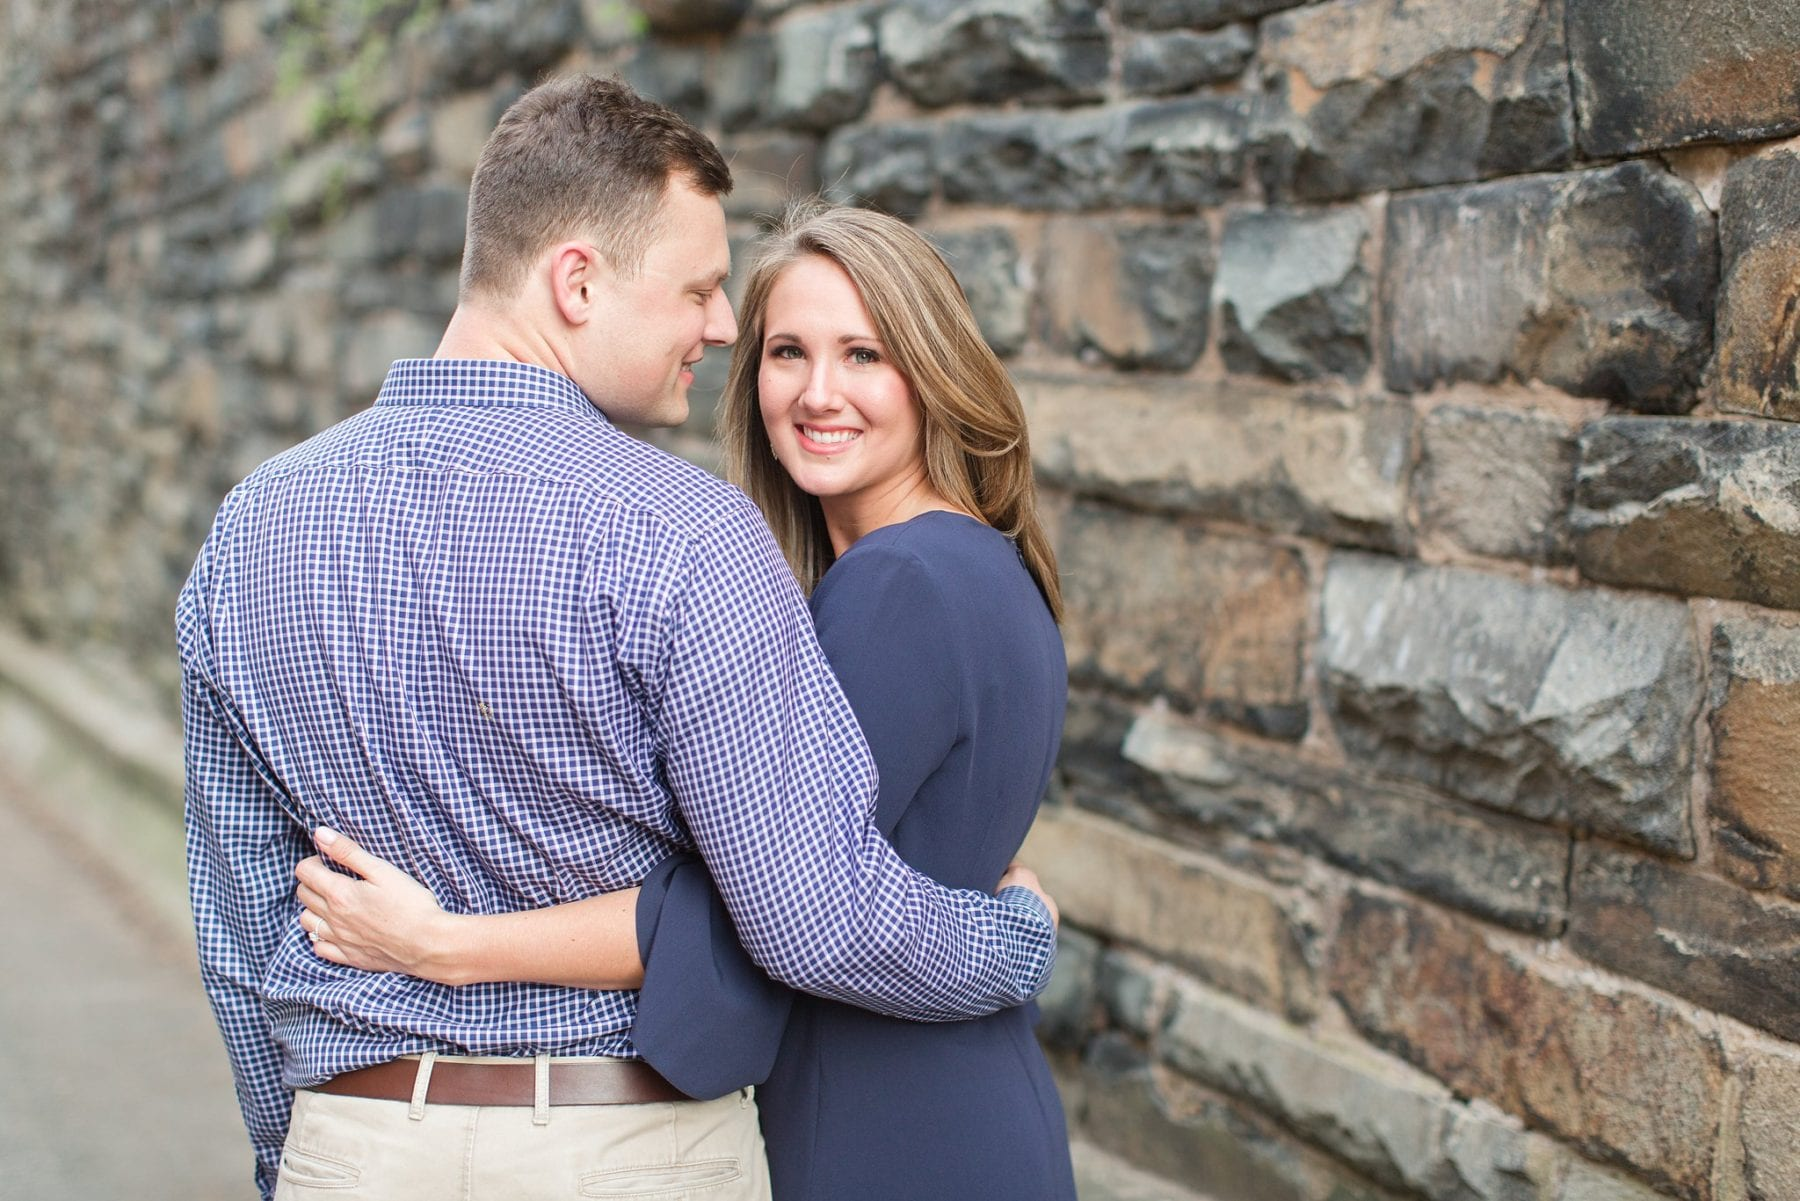 Springtime Old Town Alexandria Engagement Session Matt & Maxie Megan Kelsey Photography-135.jpg